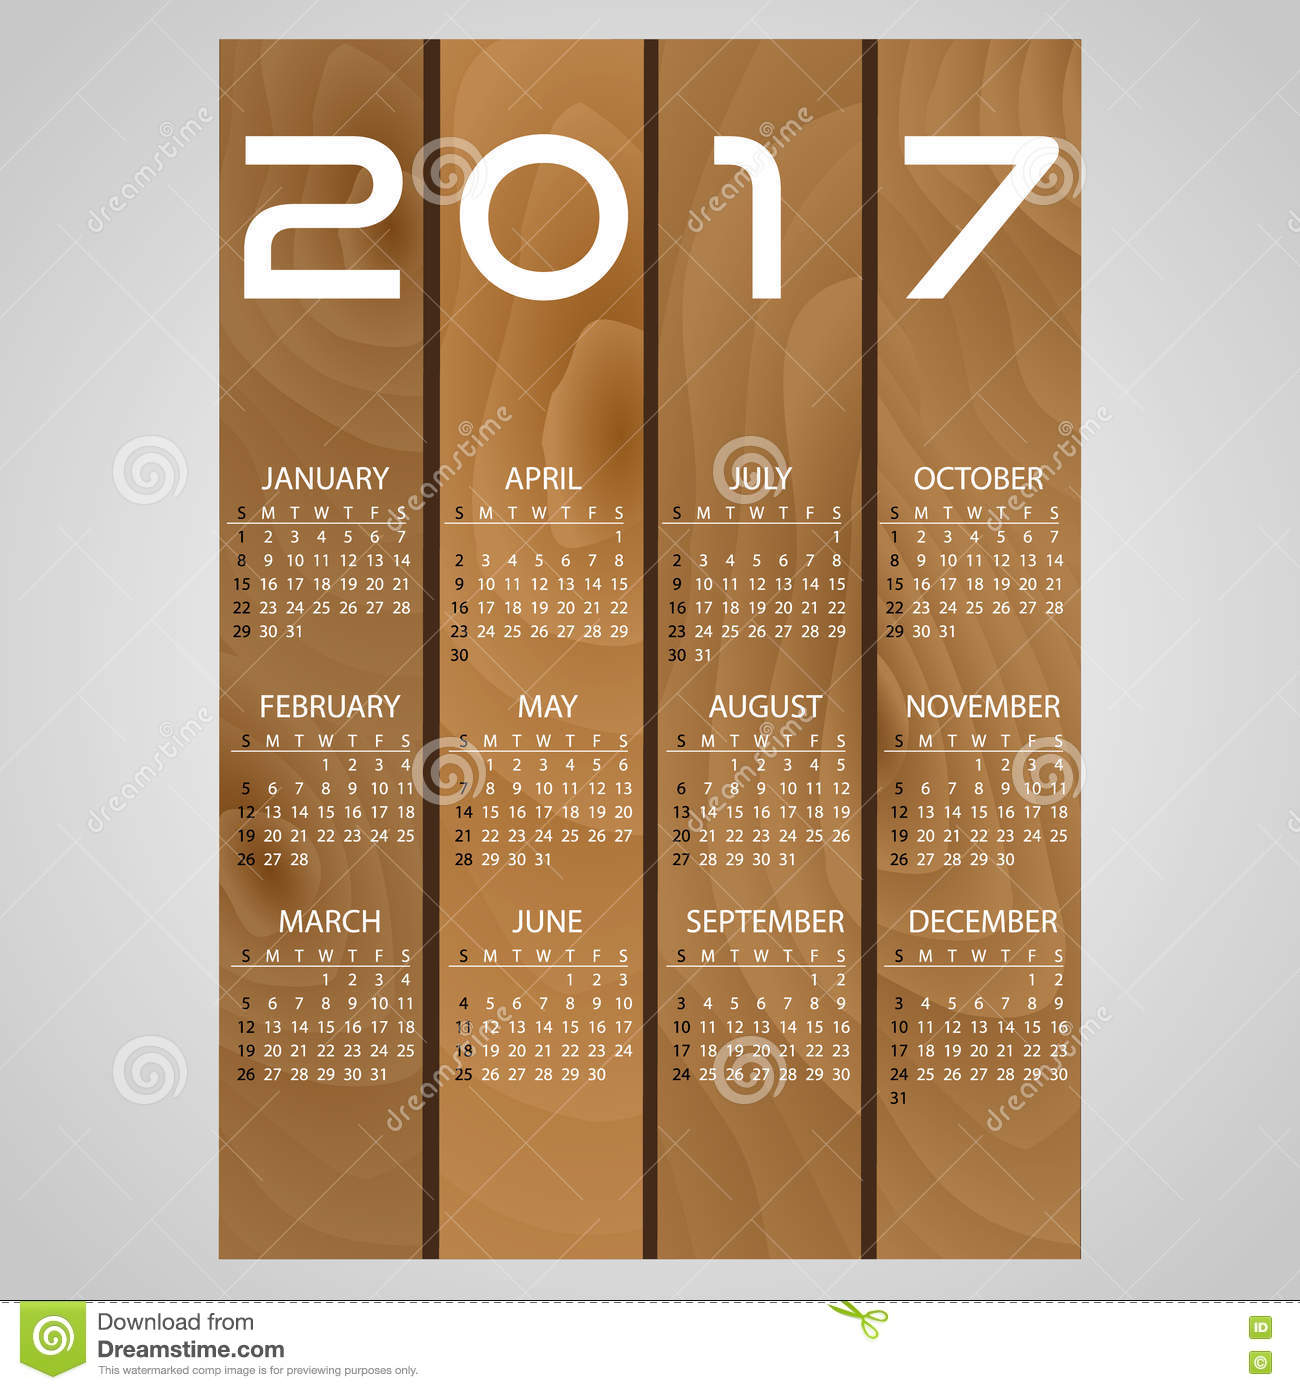 Calendar Illustration Board : Wooden boards wall calendar with white eps stock